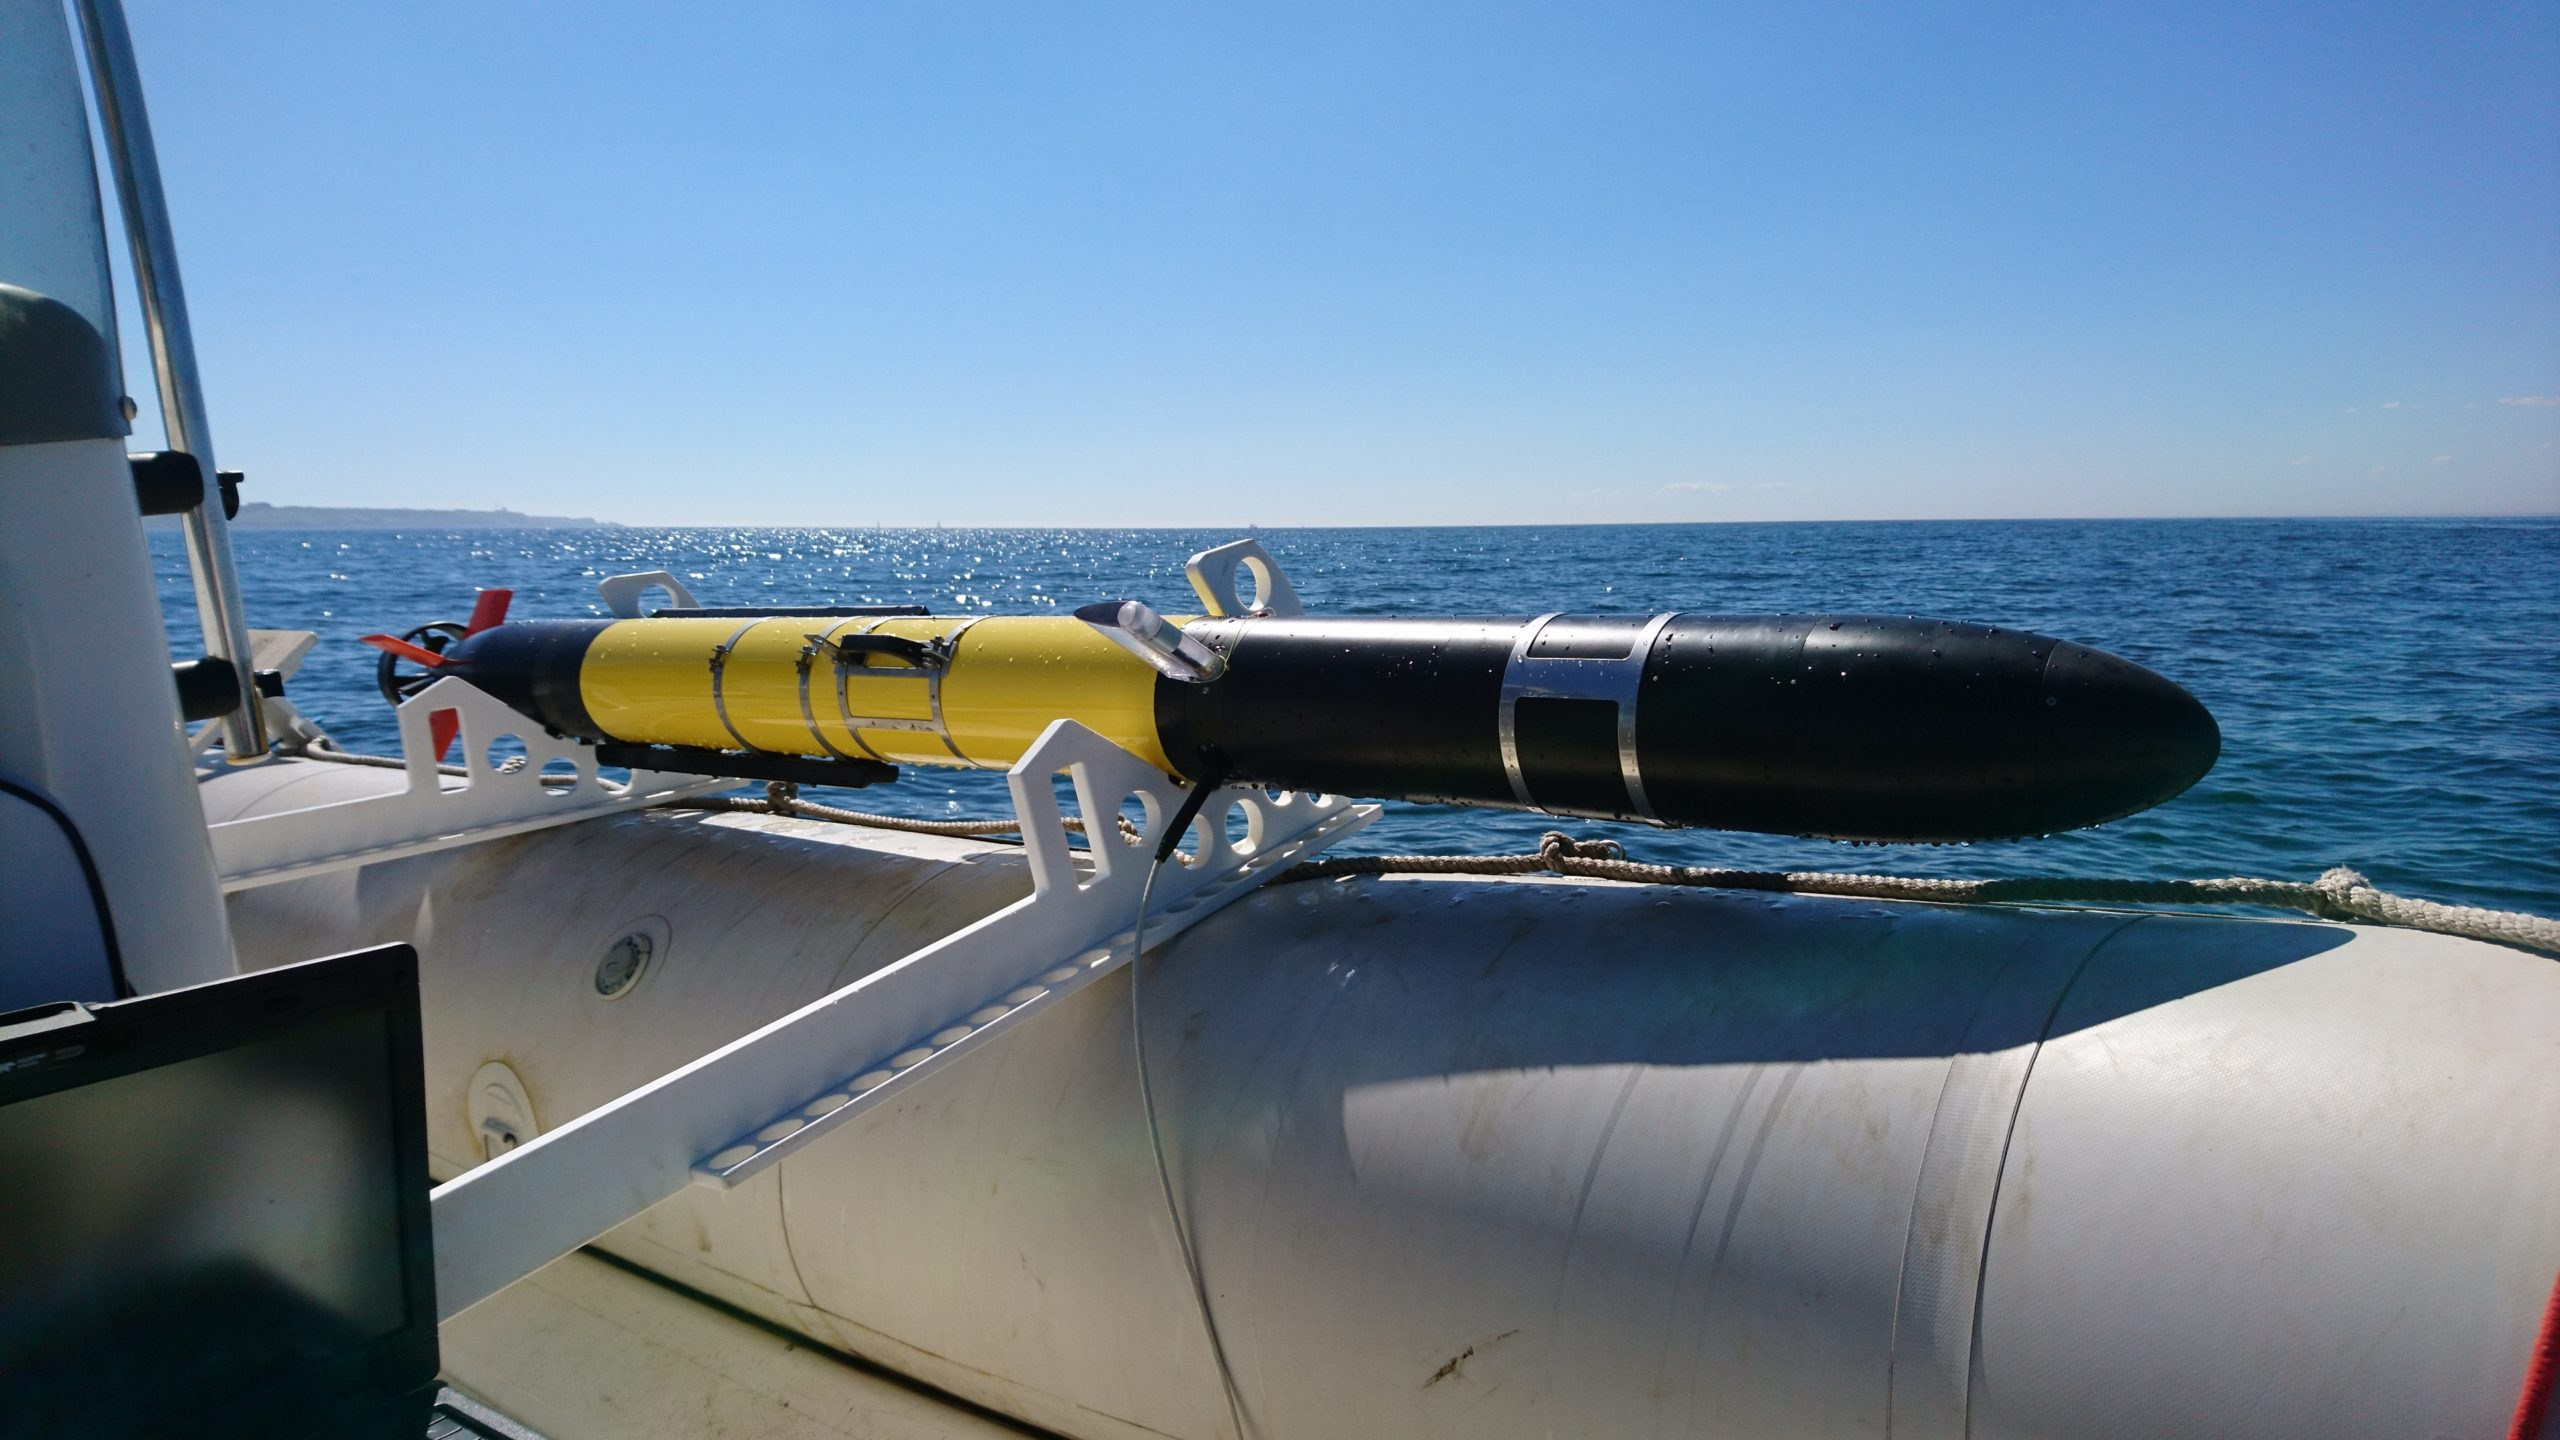 Autonomous underwater vehicle (AUV) ready for deployment